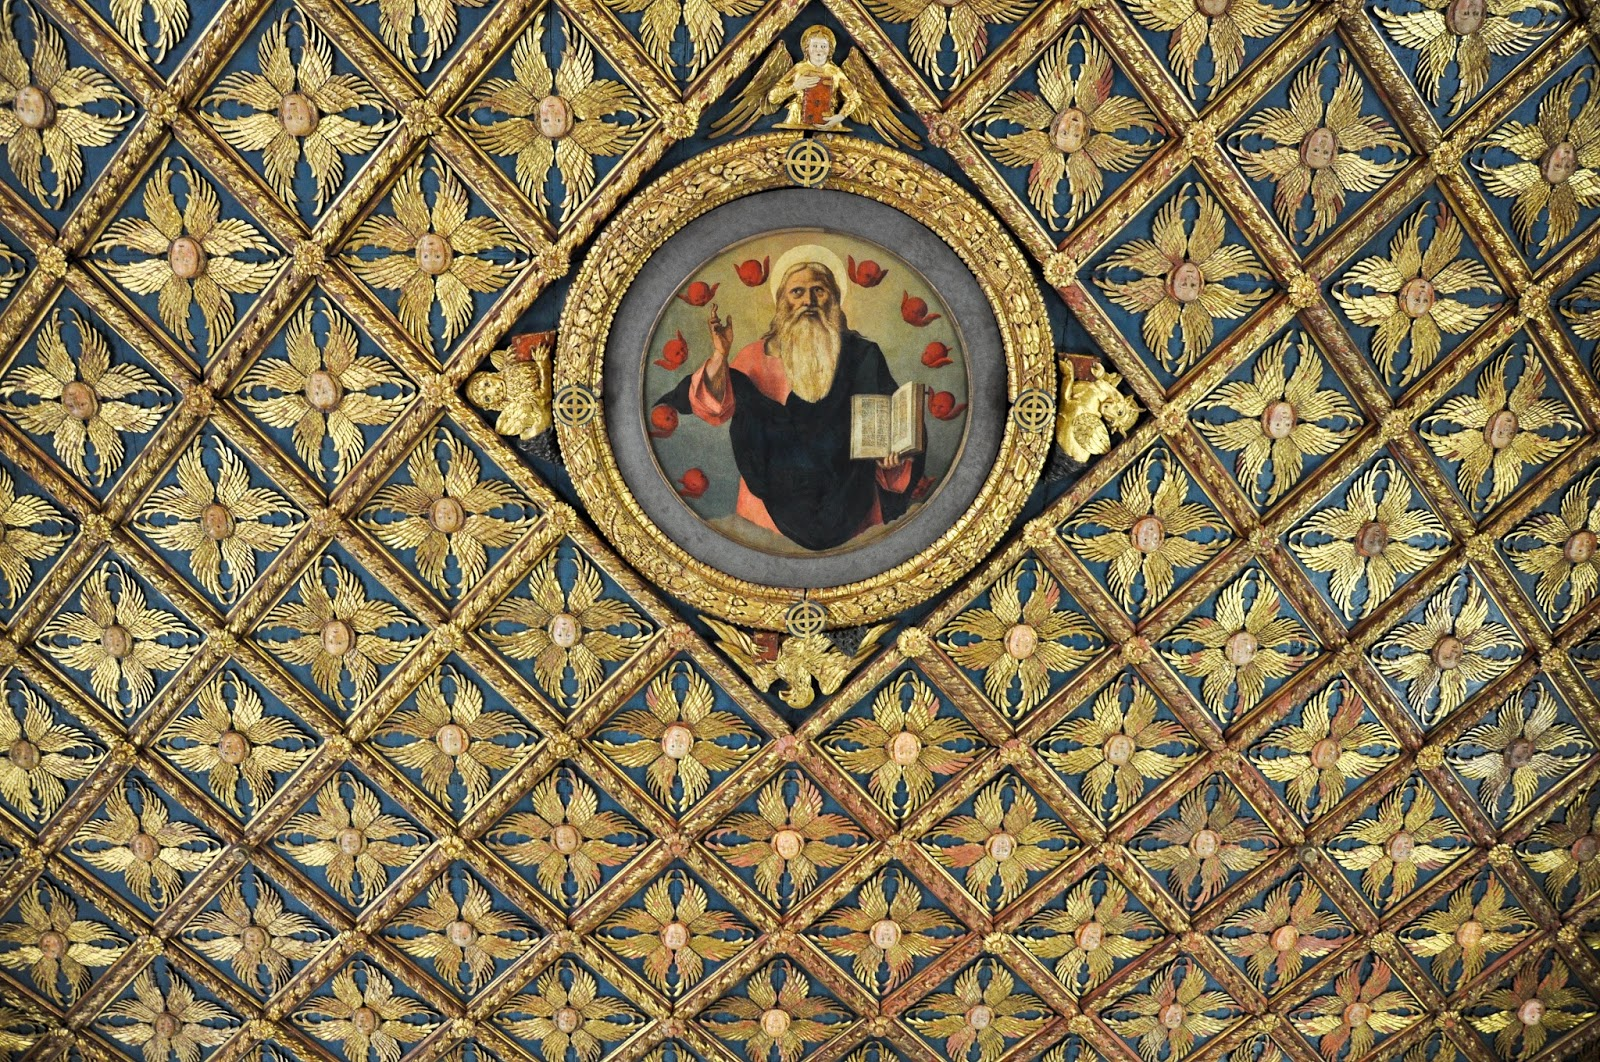 A close-up of the splendid ceiling in the first room of Gallerie dell'Accademia in Venice